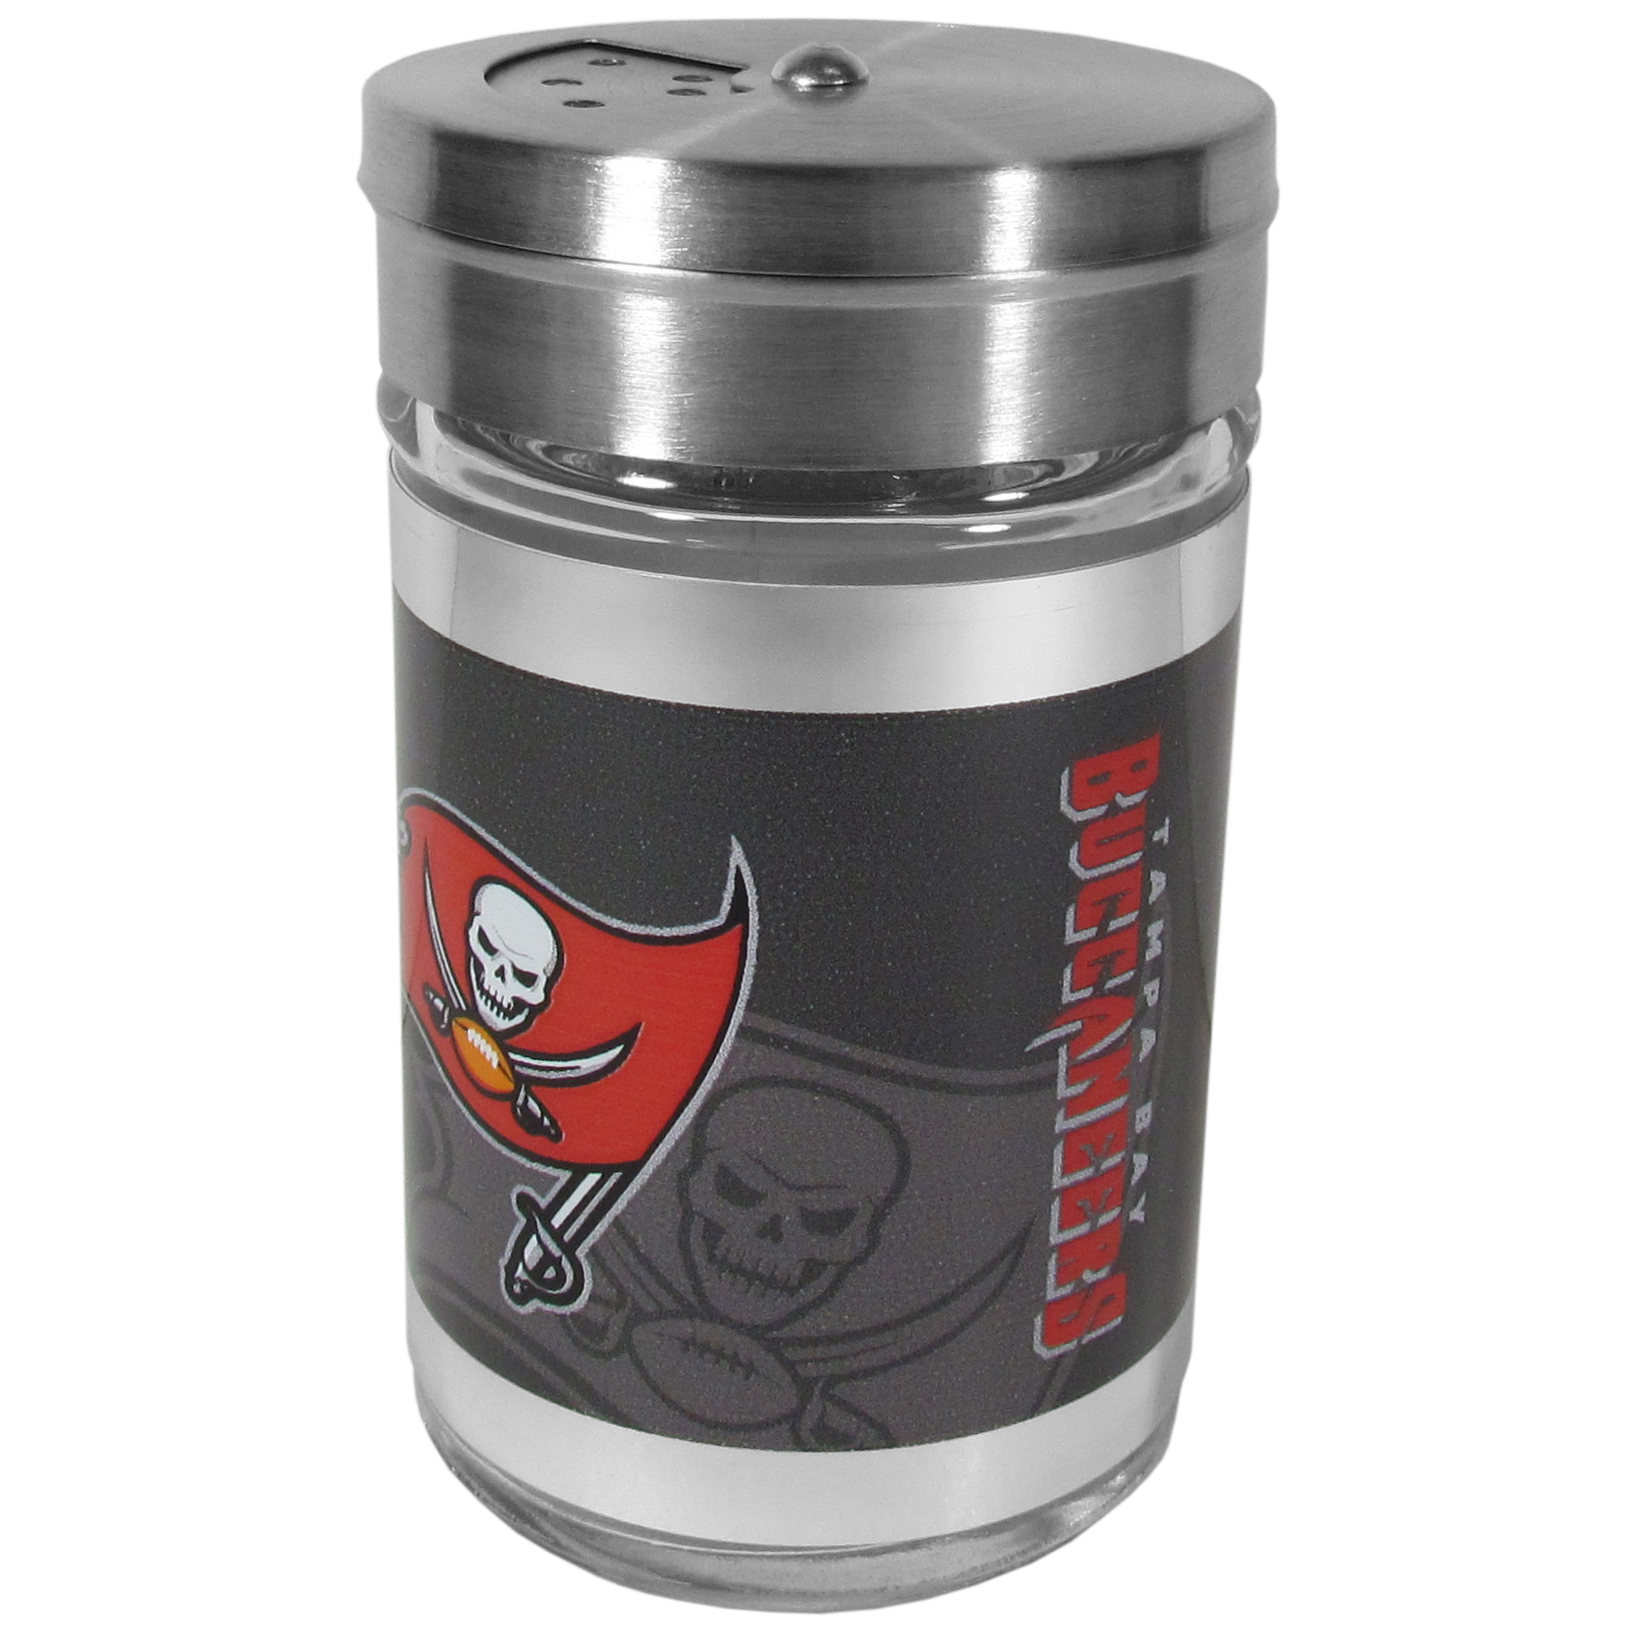 Tampa Bay Buccaneers Tailgater Season Shakers - Spice it up with our Tampa Bay Buccaneers tailgater season shakers! This compact shaker is 2 inch tall with a twist top that closes off the holes at the top making it perfect for travel preventing those messy spills. The shaker has wide holes perfect for keeping your pepper seeds or cheese toppings. The bright team graphics will make you the envy of the other fans while you are grilling up your tailgating goodies.